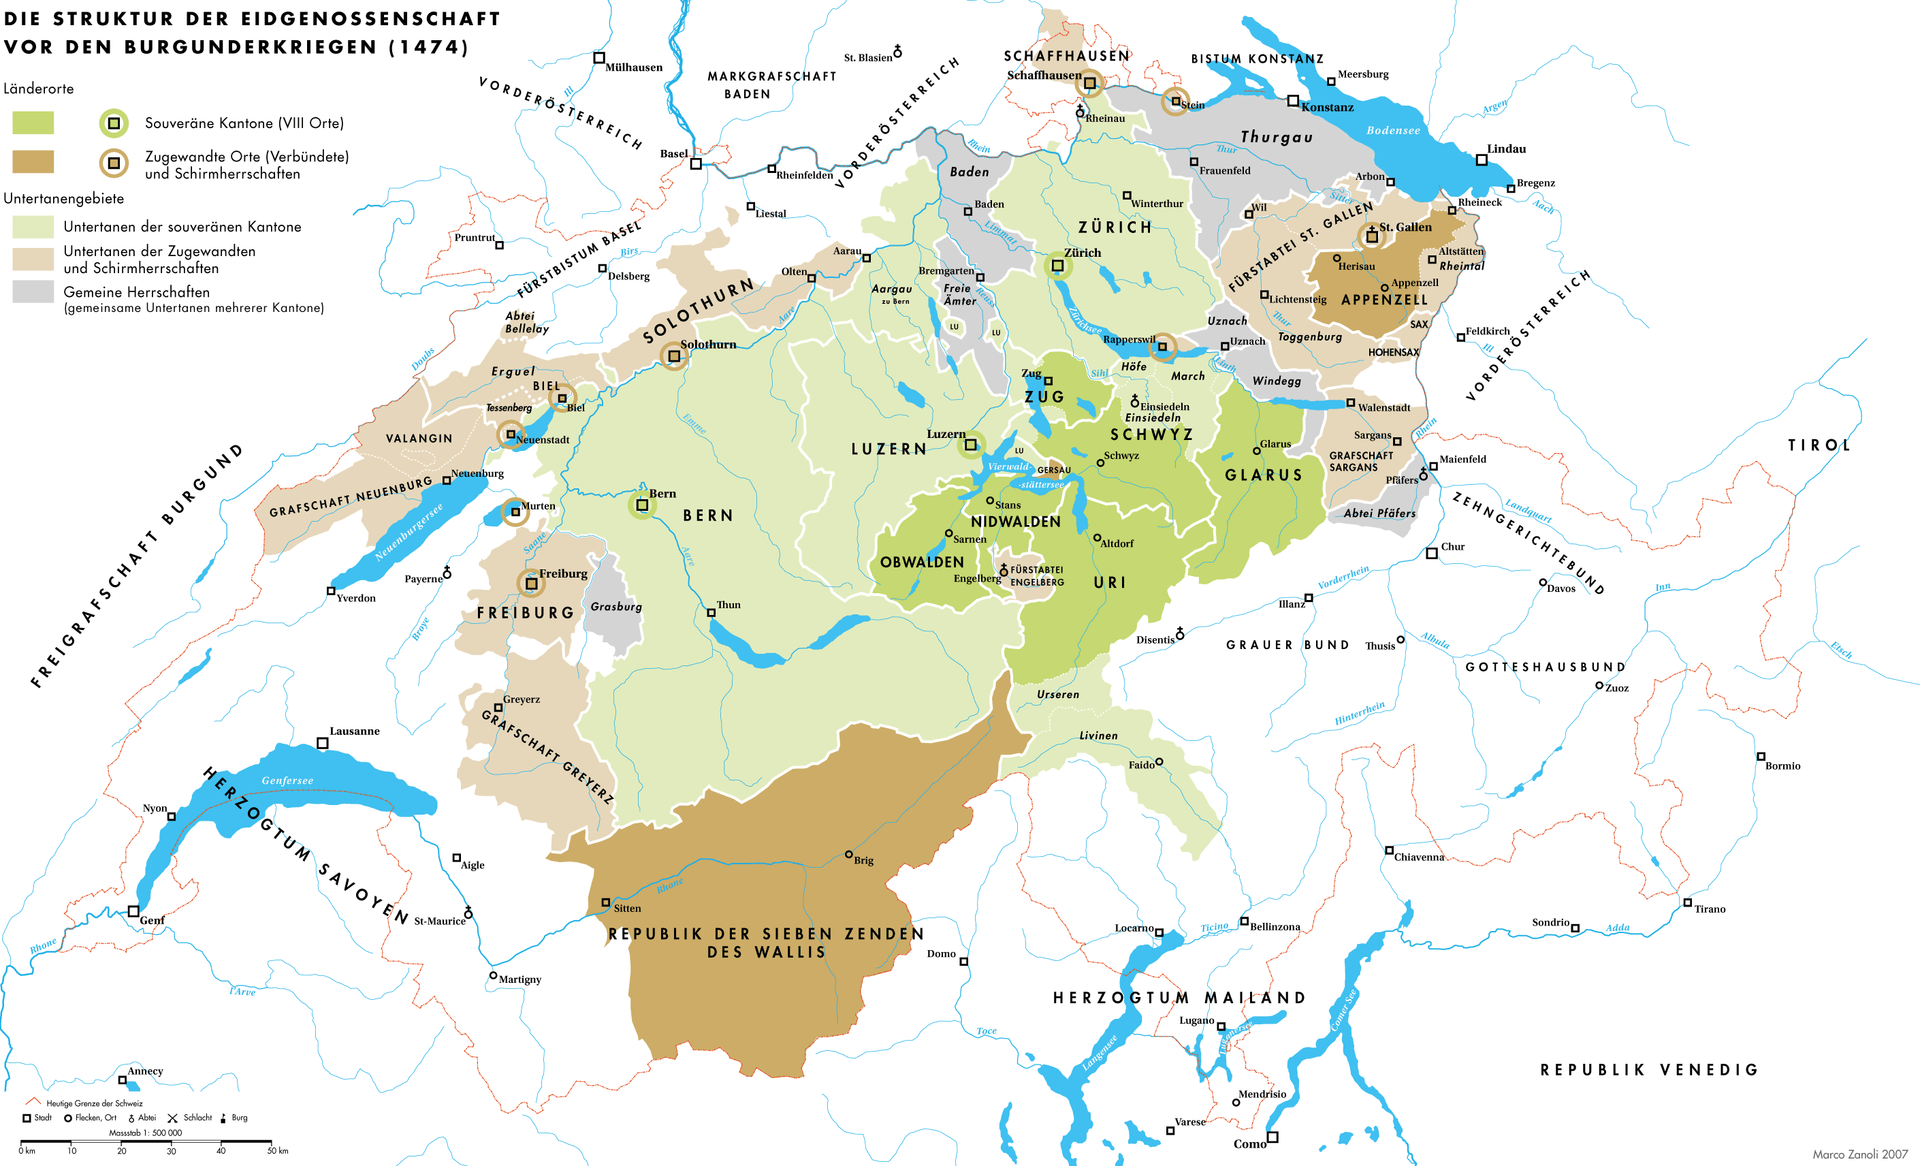 A map of Confederation just before the beginning of the Burgundian Wars in 1474.